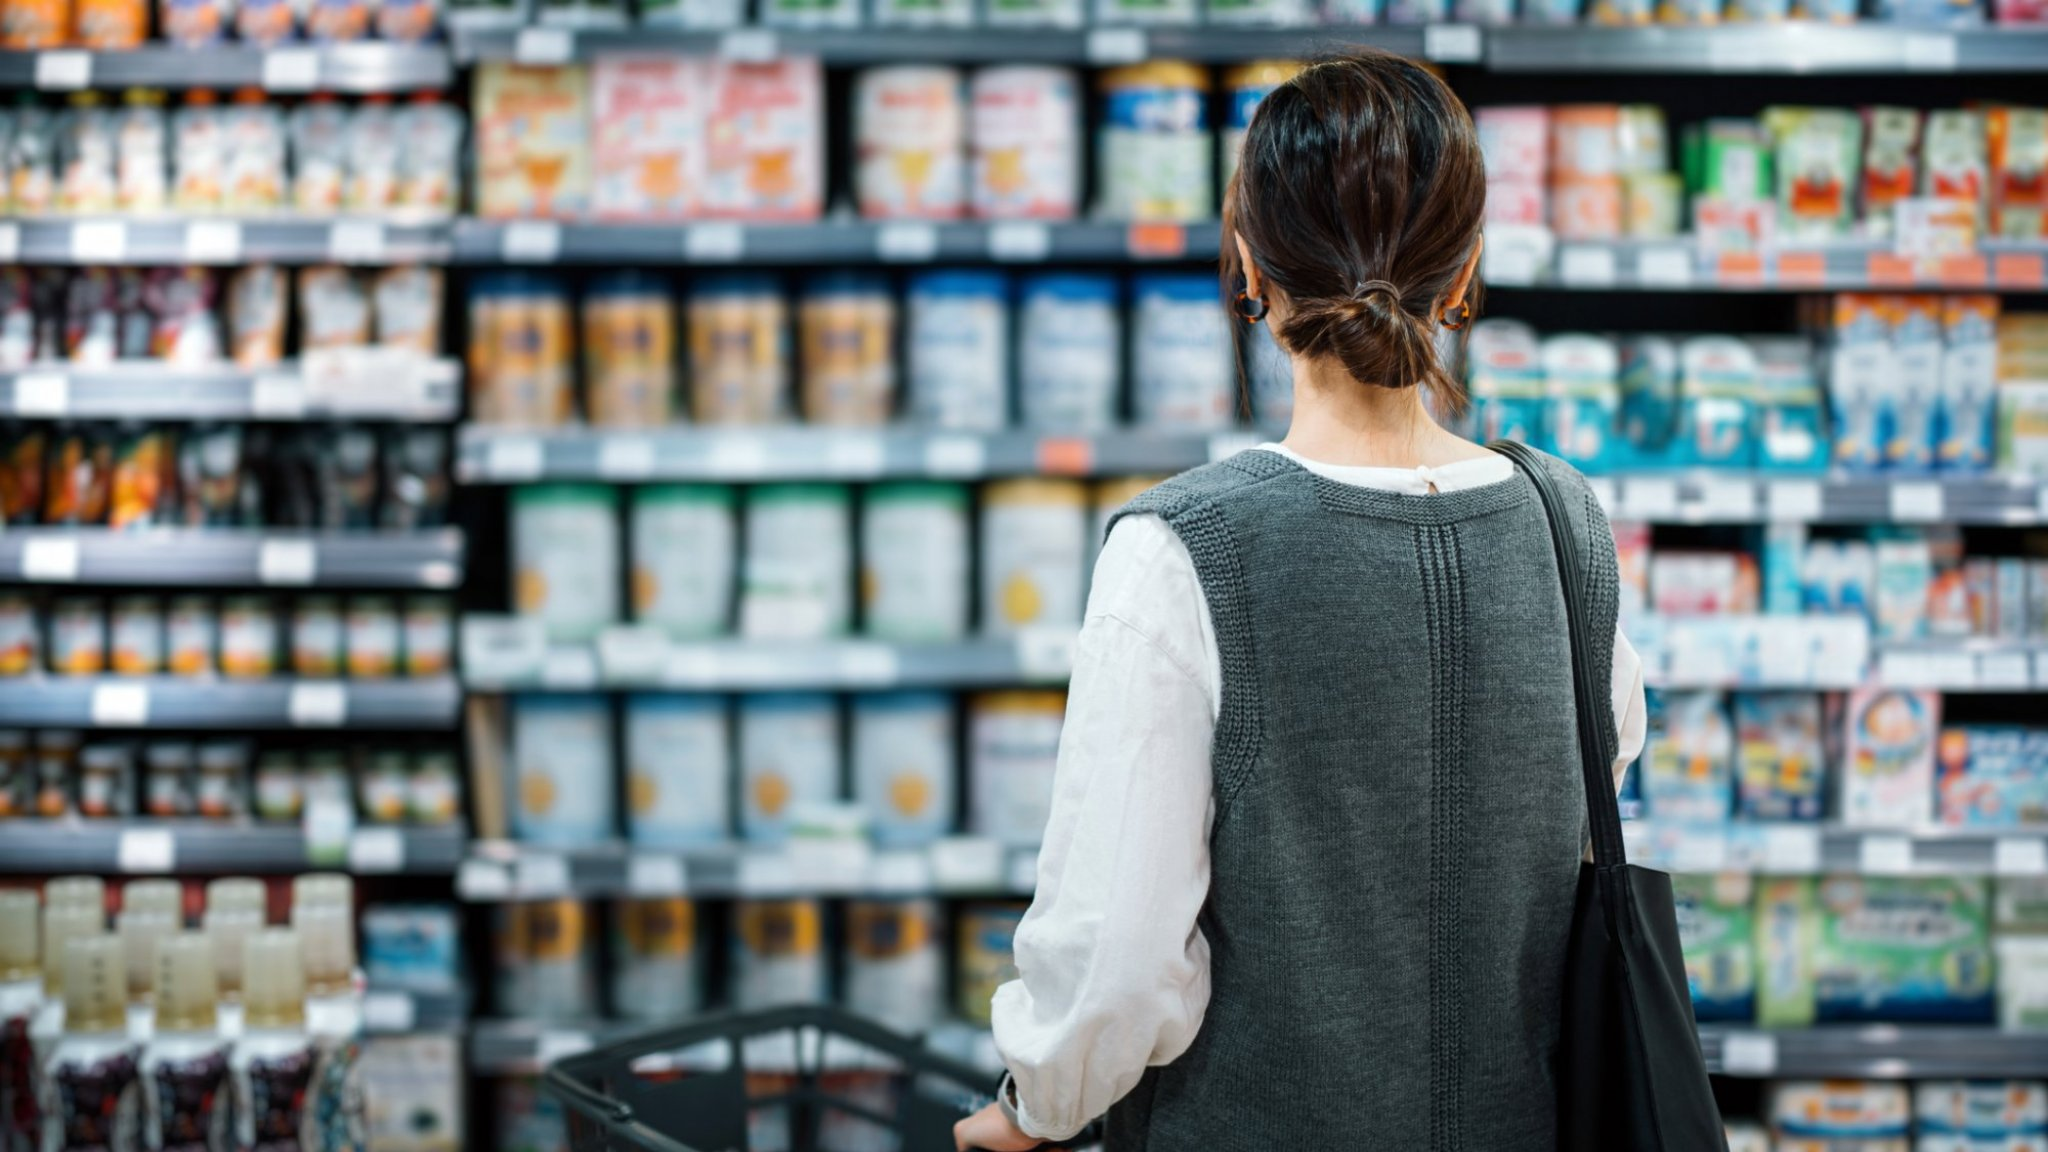 Advice for pregnant women: Do not eat too much soy